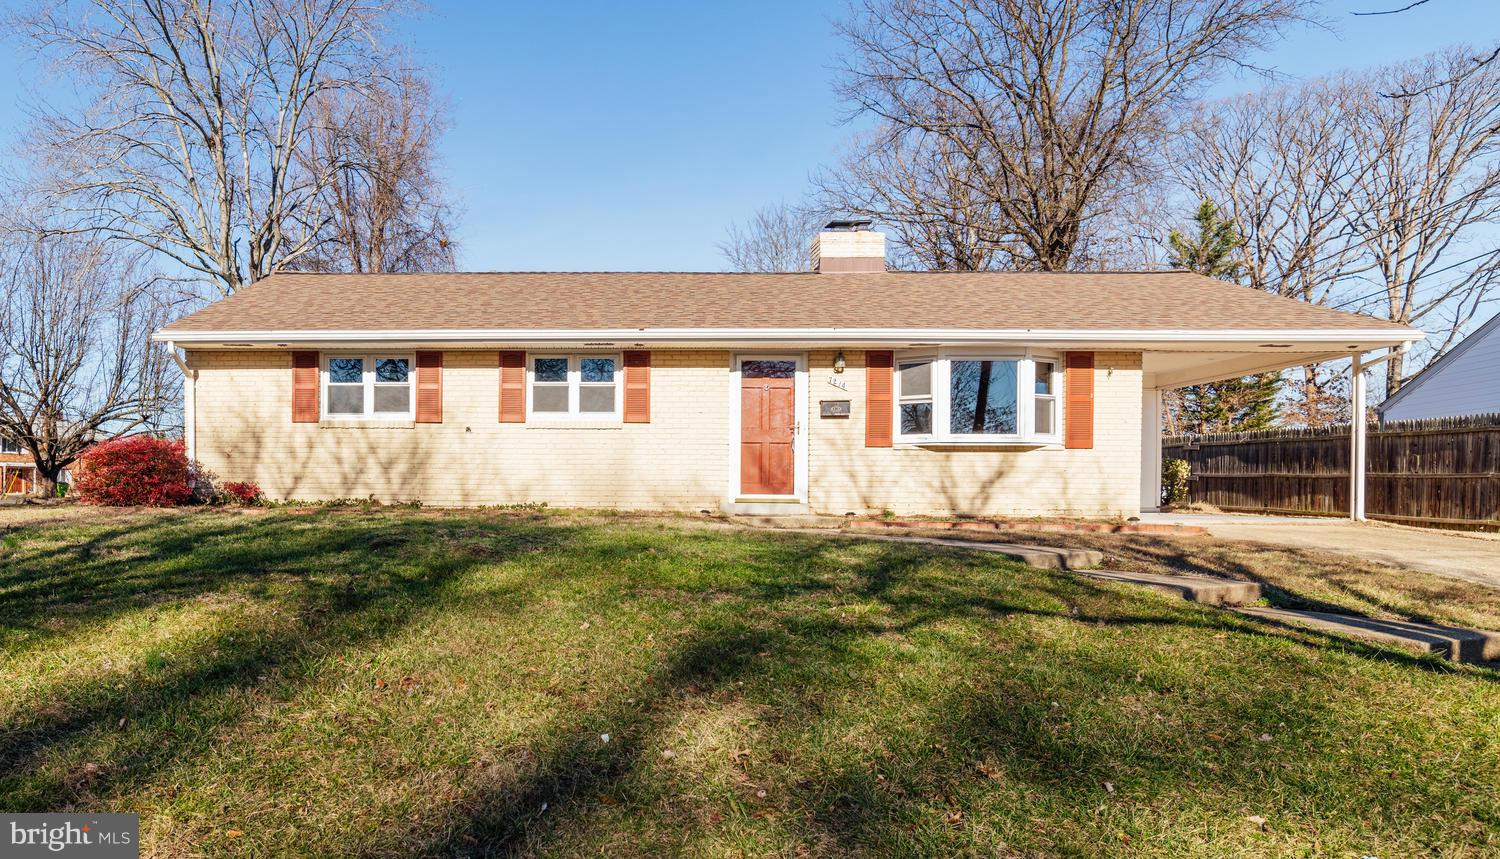 **OPEN HOUSE SUN. 1/20 FROM 1-4 PM** SINGLE-LEVEL LIVING AT IT'S FINEST! TOO MANY UPGRADES TO LIST. HARDWOOD FLOORS & FRESH PAINT THROUGHOUT,  GOURMET KITCHEN W/ GRANITE, STAINLESS, & MAPLE CABINETS. ALL 3 FULL BATHS RENOVATED. ROOF/WINDOWS/DOORS ALL RECENTLY REPLACED.  FULLY FENCED BACKYARD W/ NEW PATIO.